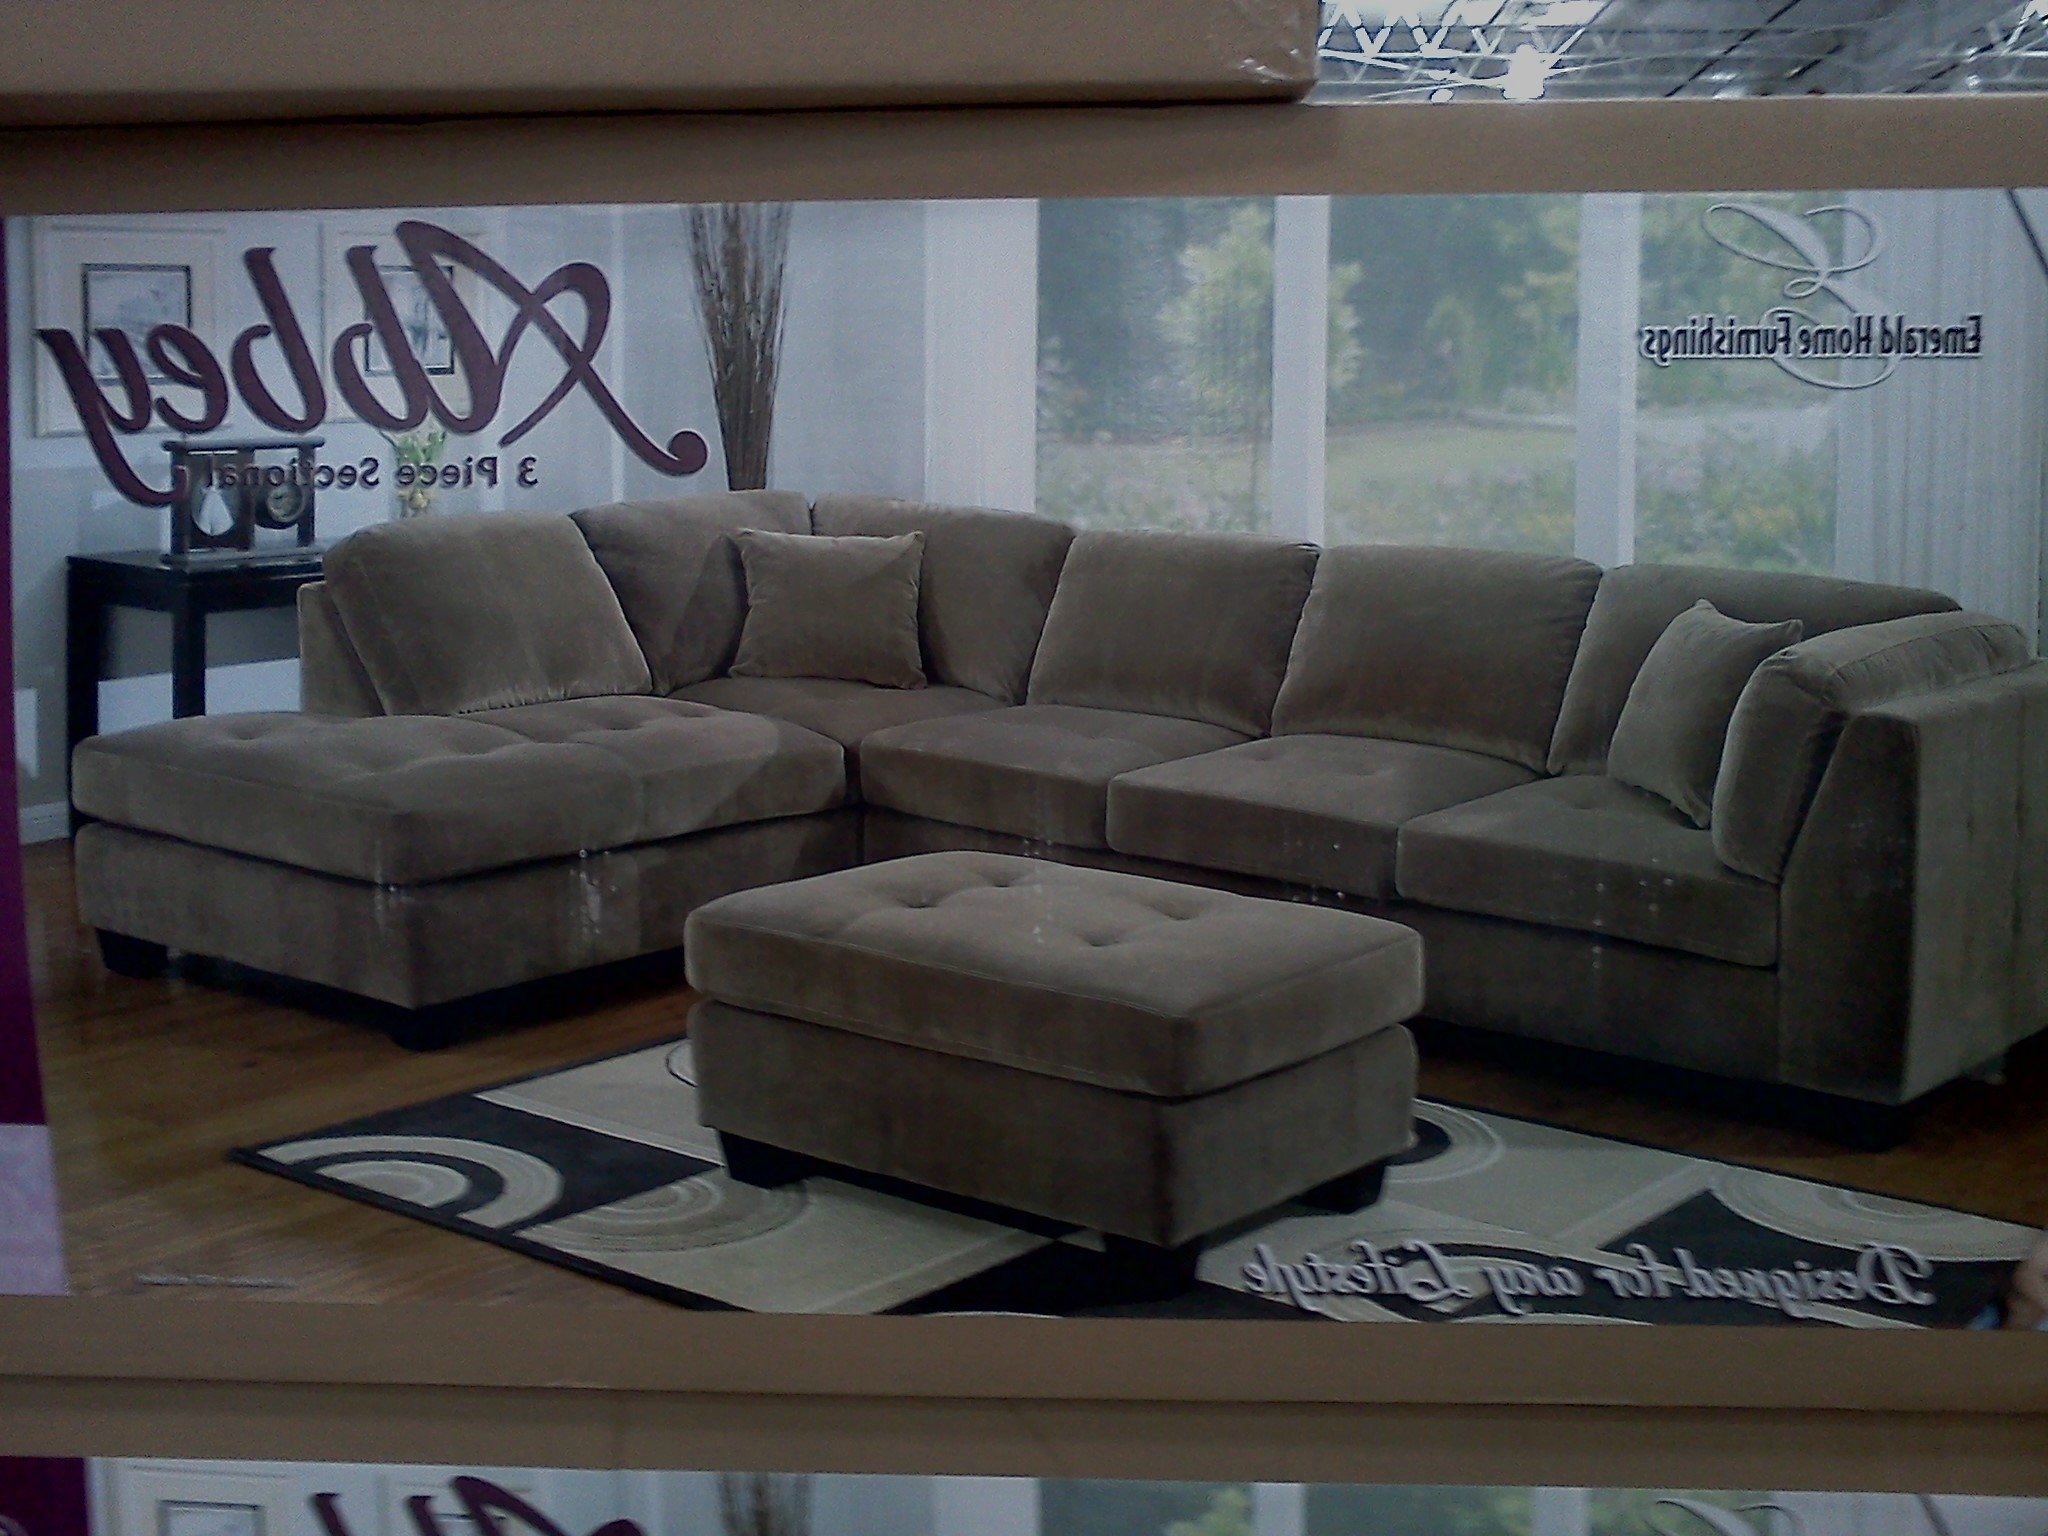 Home Furniture Sectional Sofas Regarding Most Recent Costco Emerald Home Modular Sectional Slickdeals – Kaf Mobile (View 4 of 15)